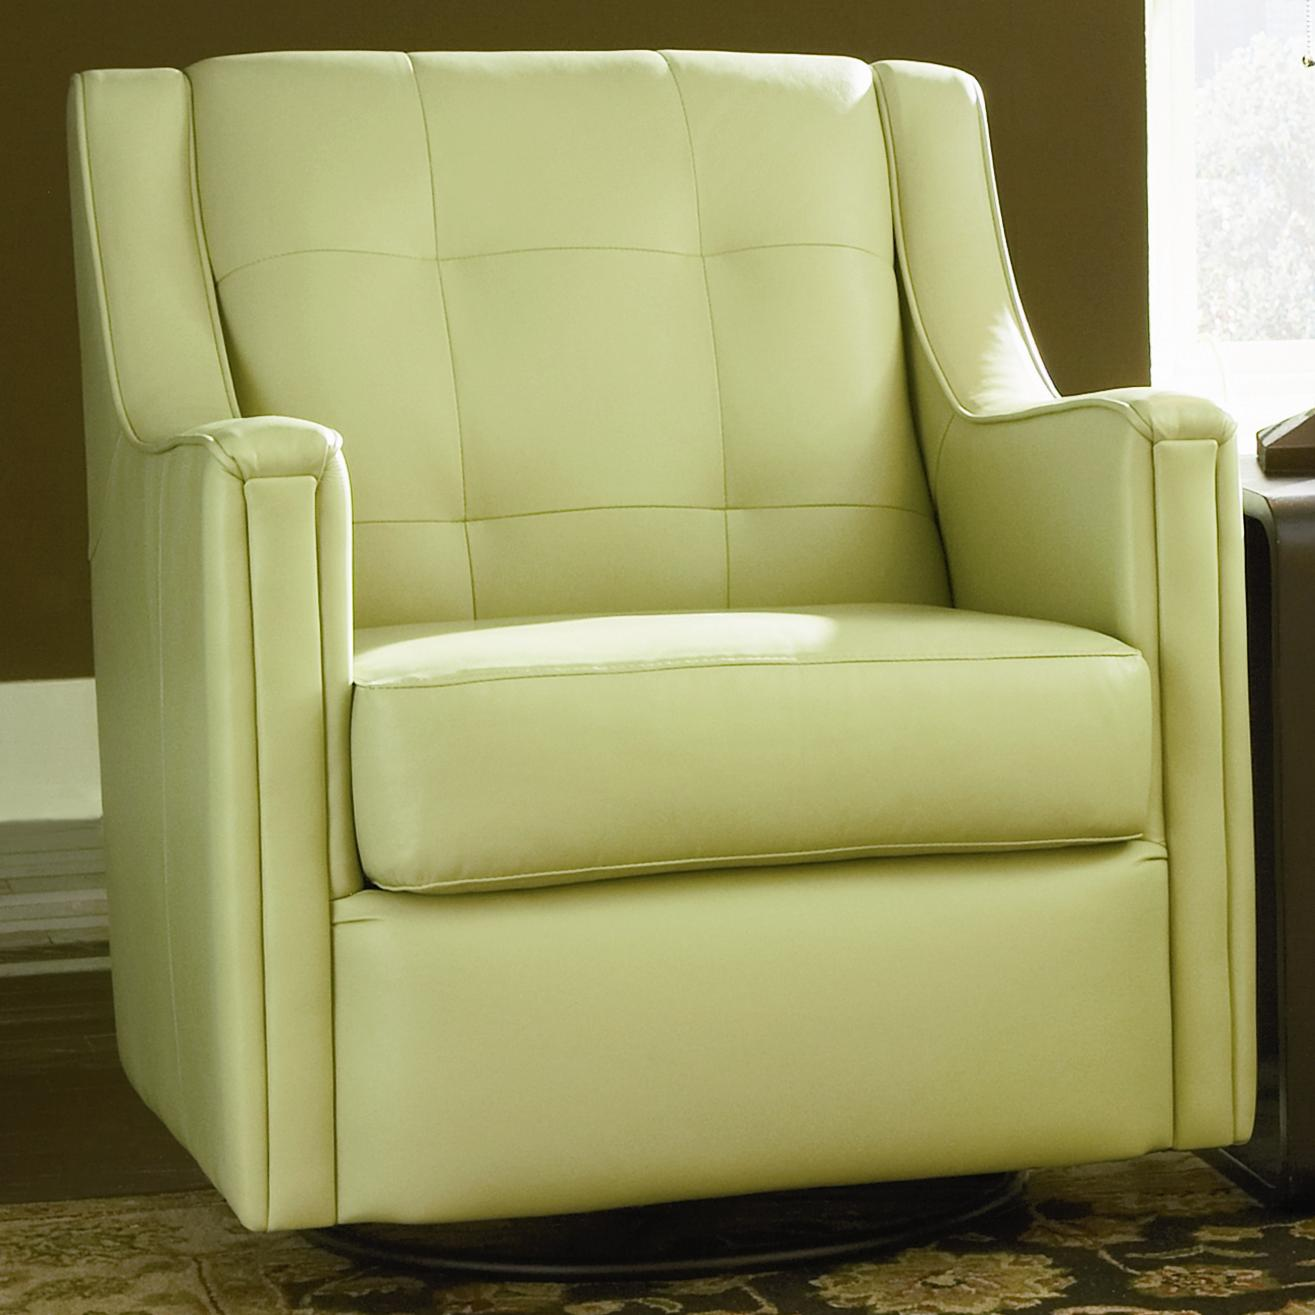 furniture contemporary chair store lee swivel swiveltubchair p villa tub and c vici